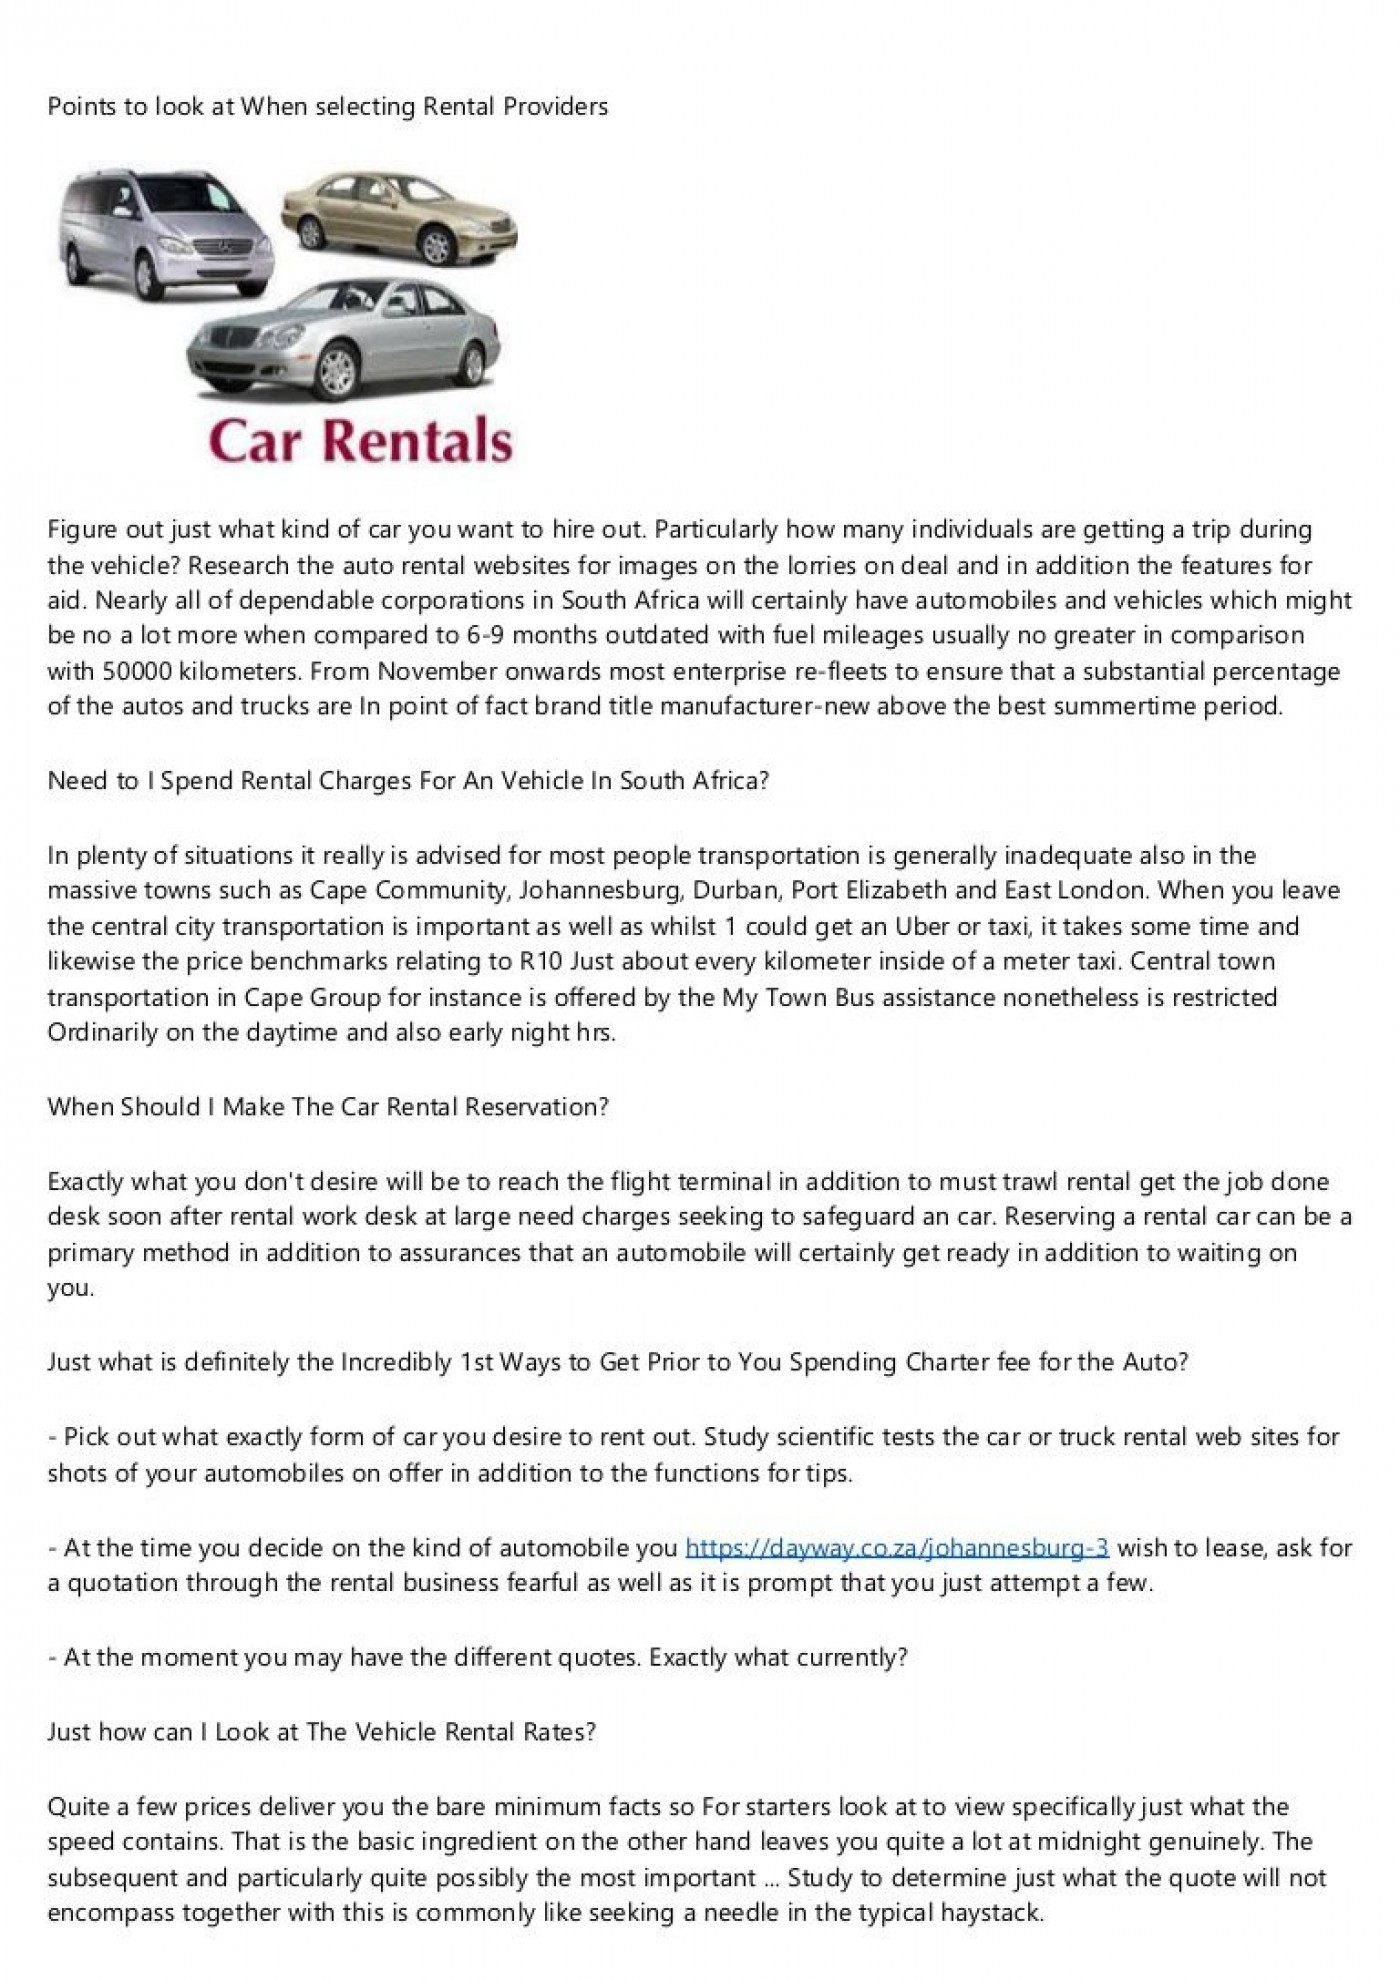 002 Fascinating Car Rental Agreement Template South Africa Example  Vehicle Rent To Own1400